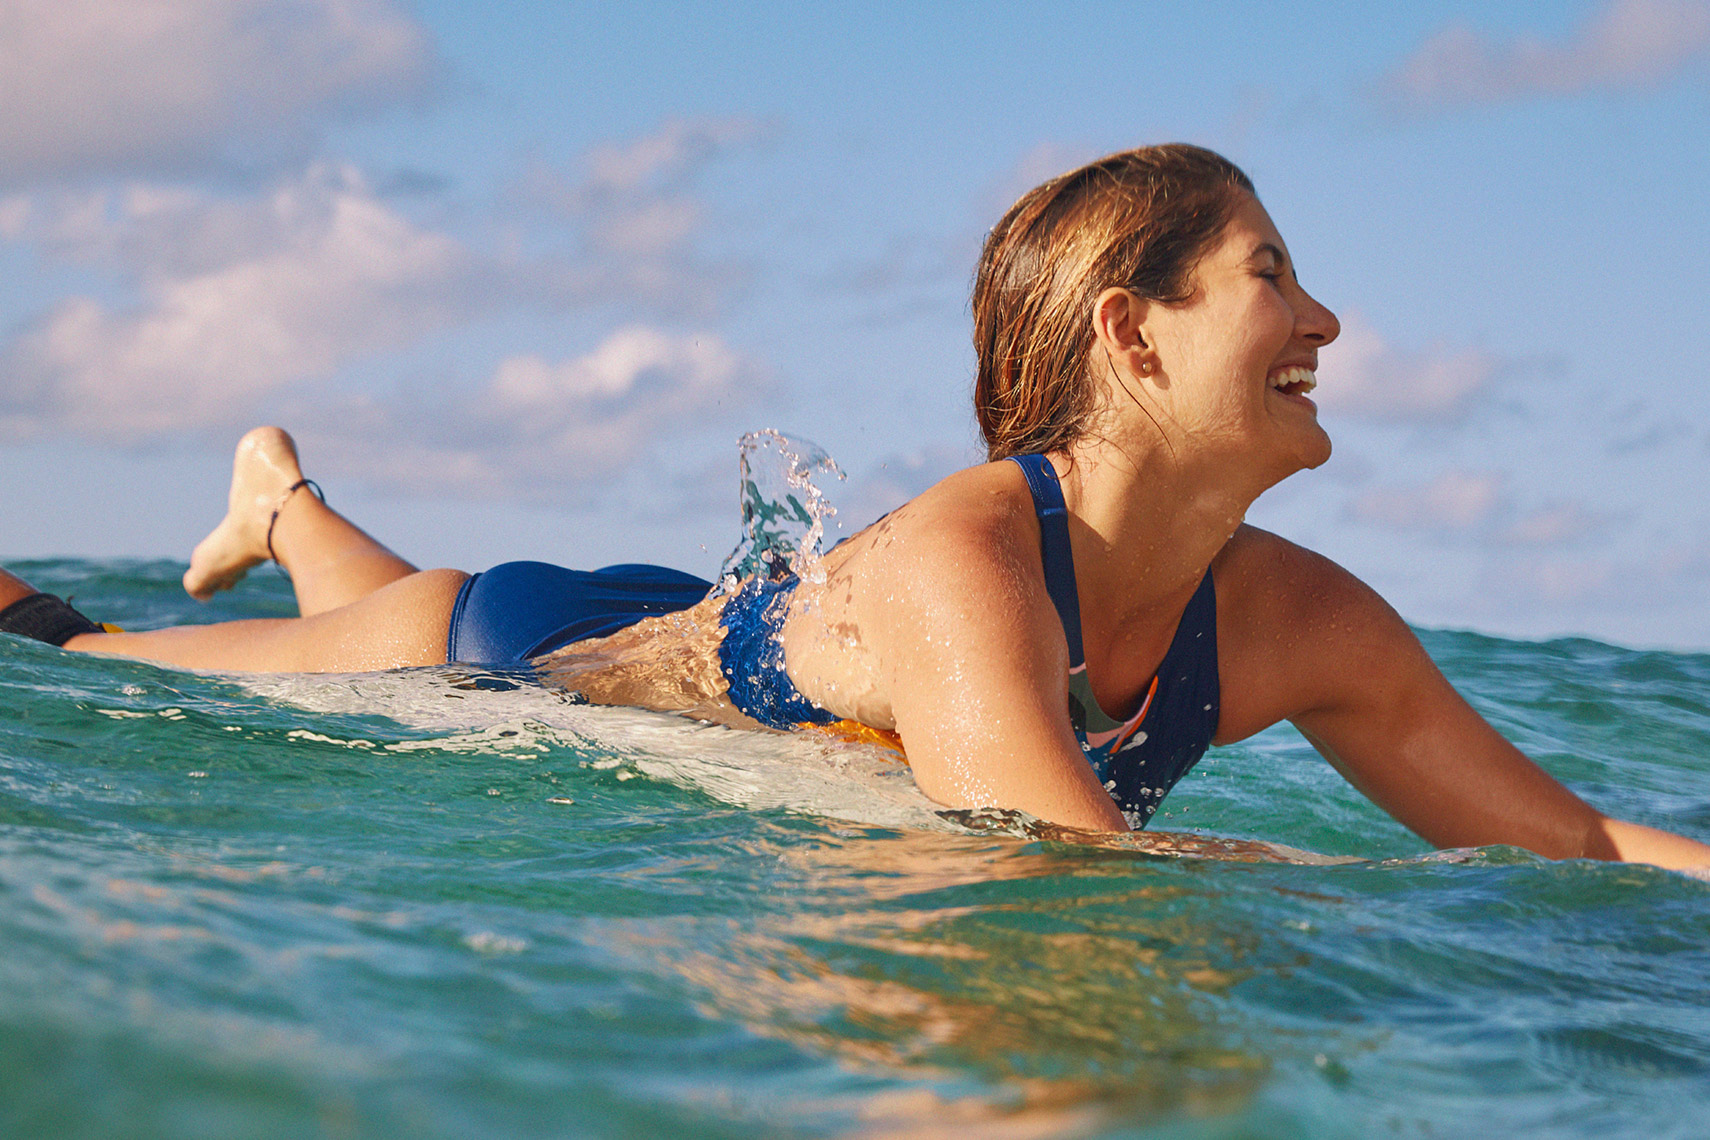 woman laughing in the ocean on surfboard